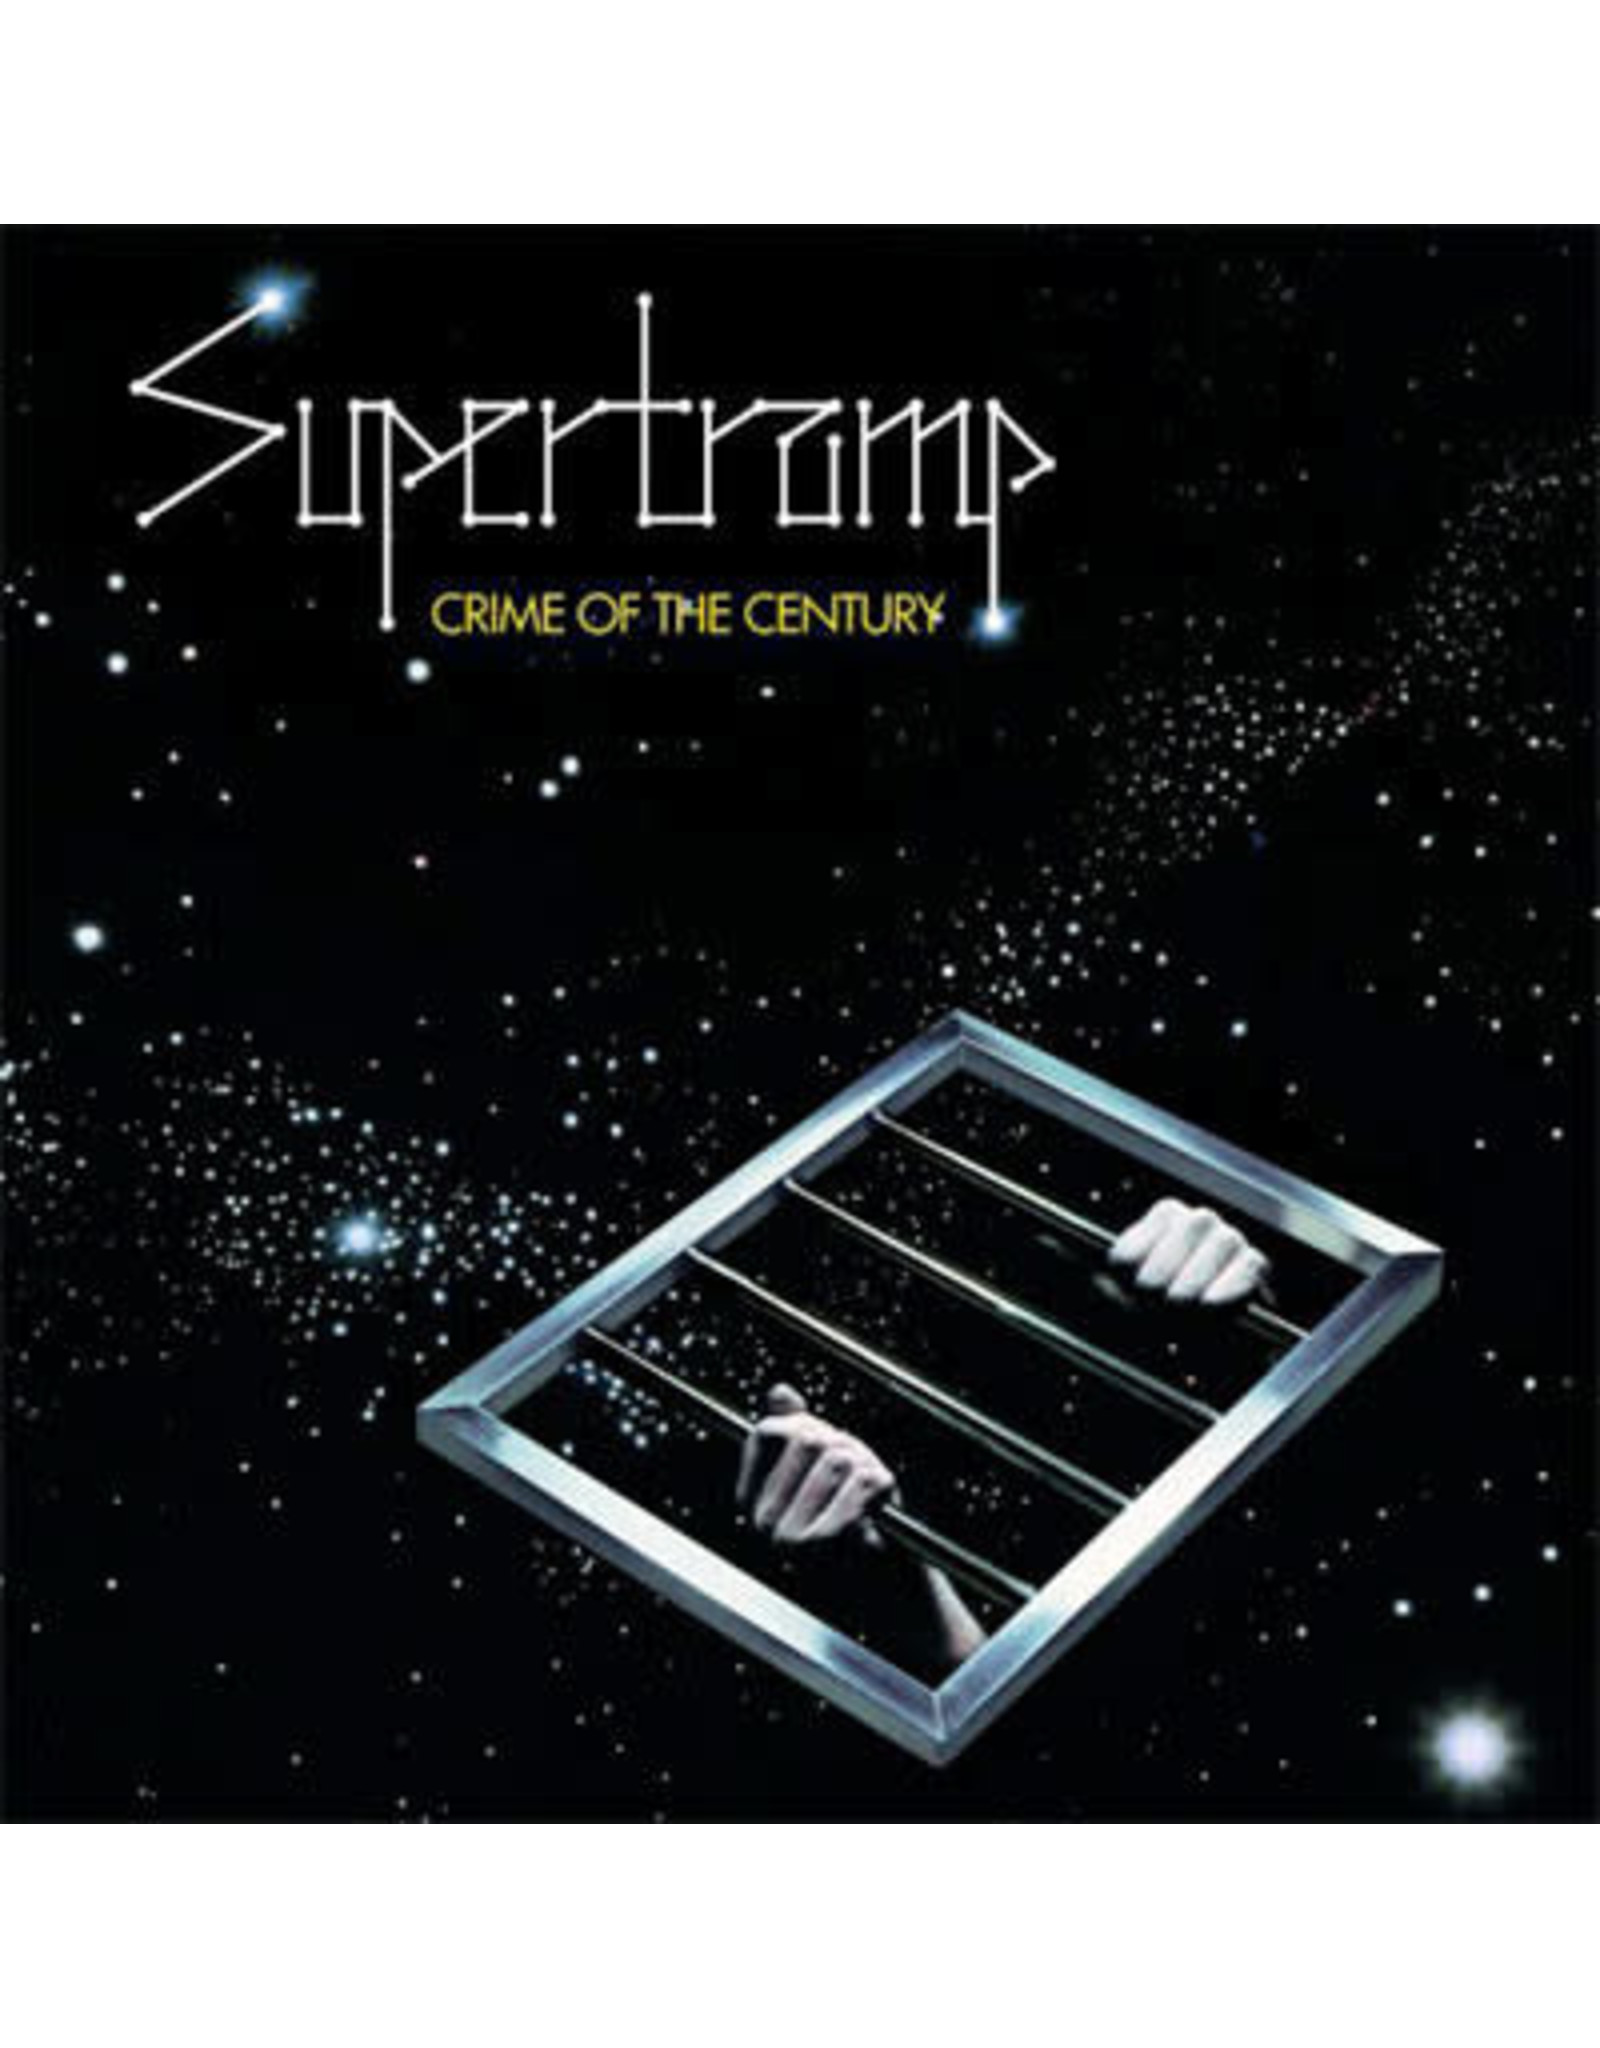 Supertramp - Crime of the Century (2014 RM) CD